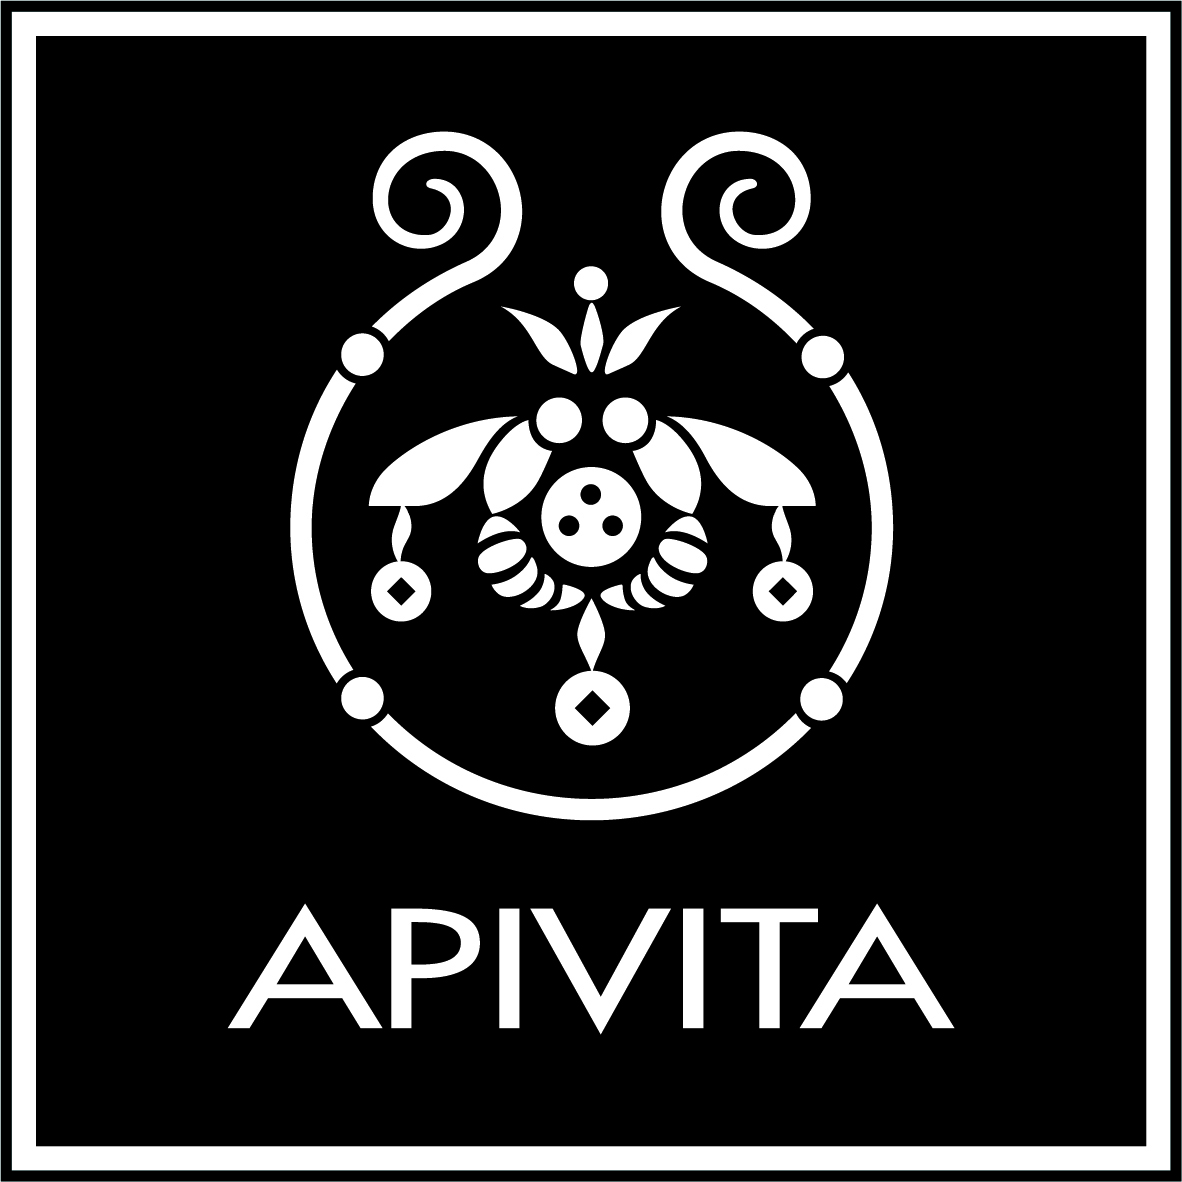 Apivita_final_logo_larger